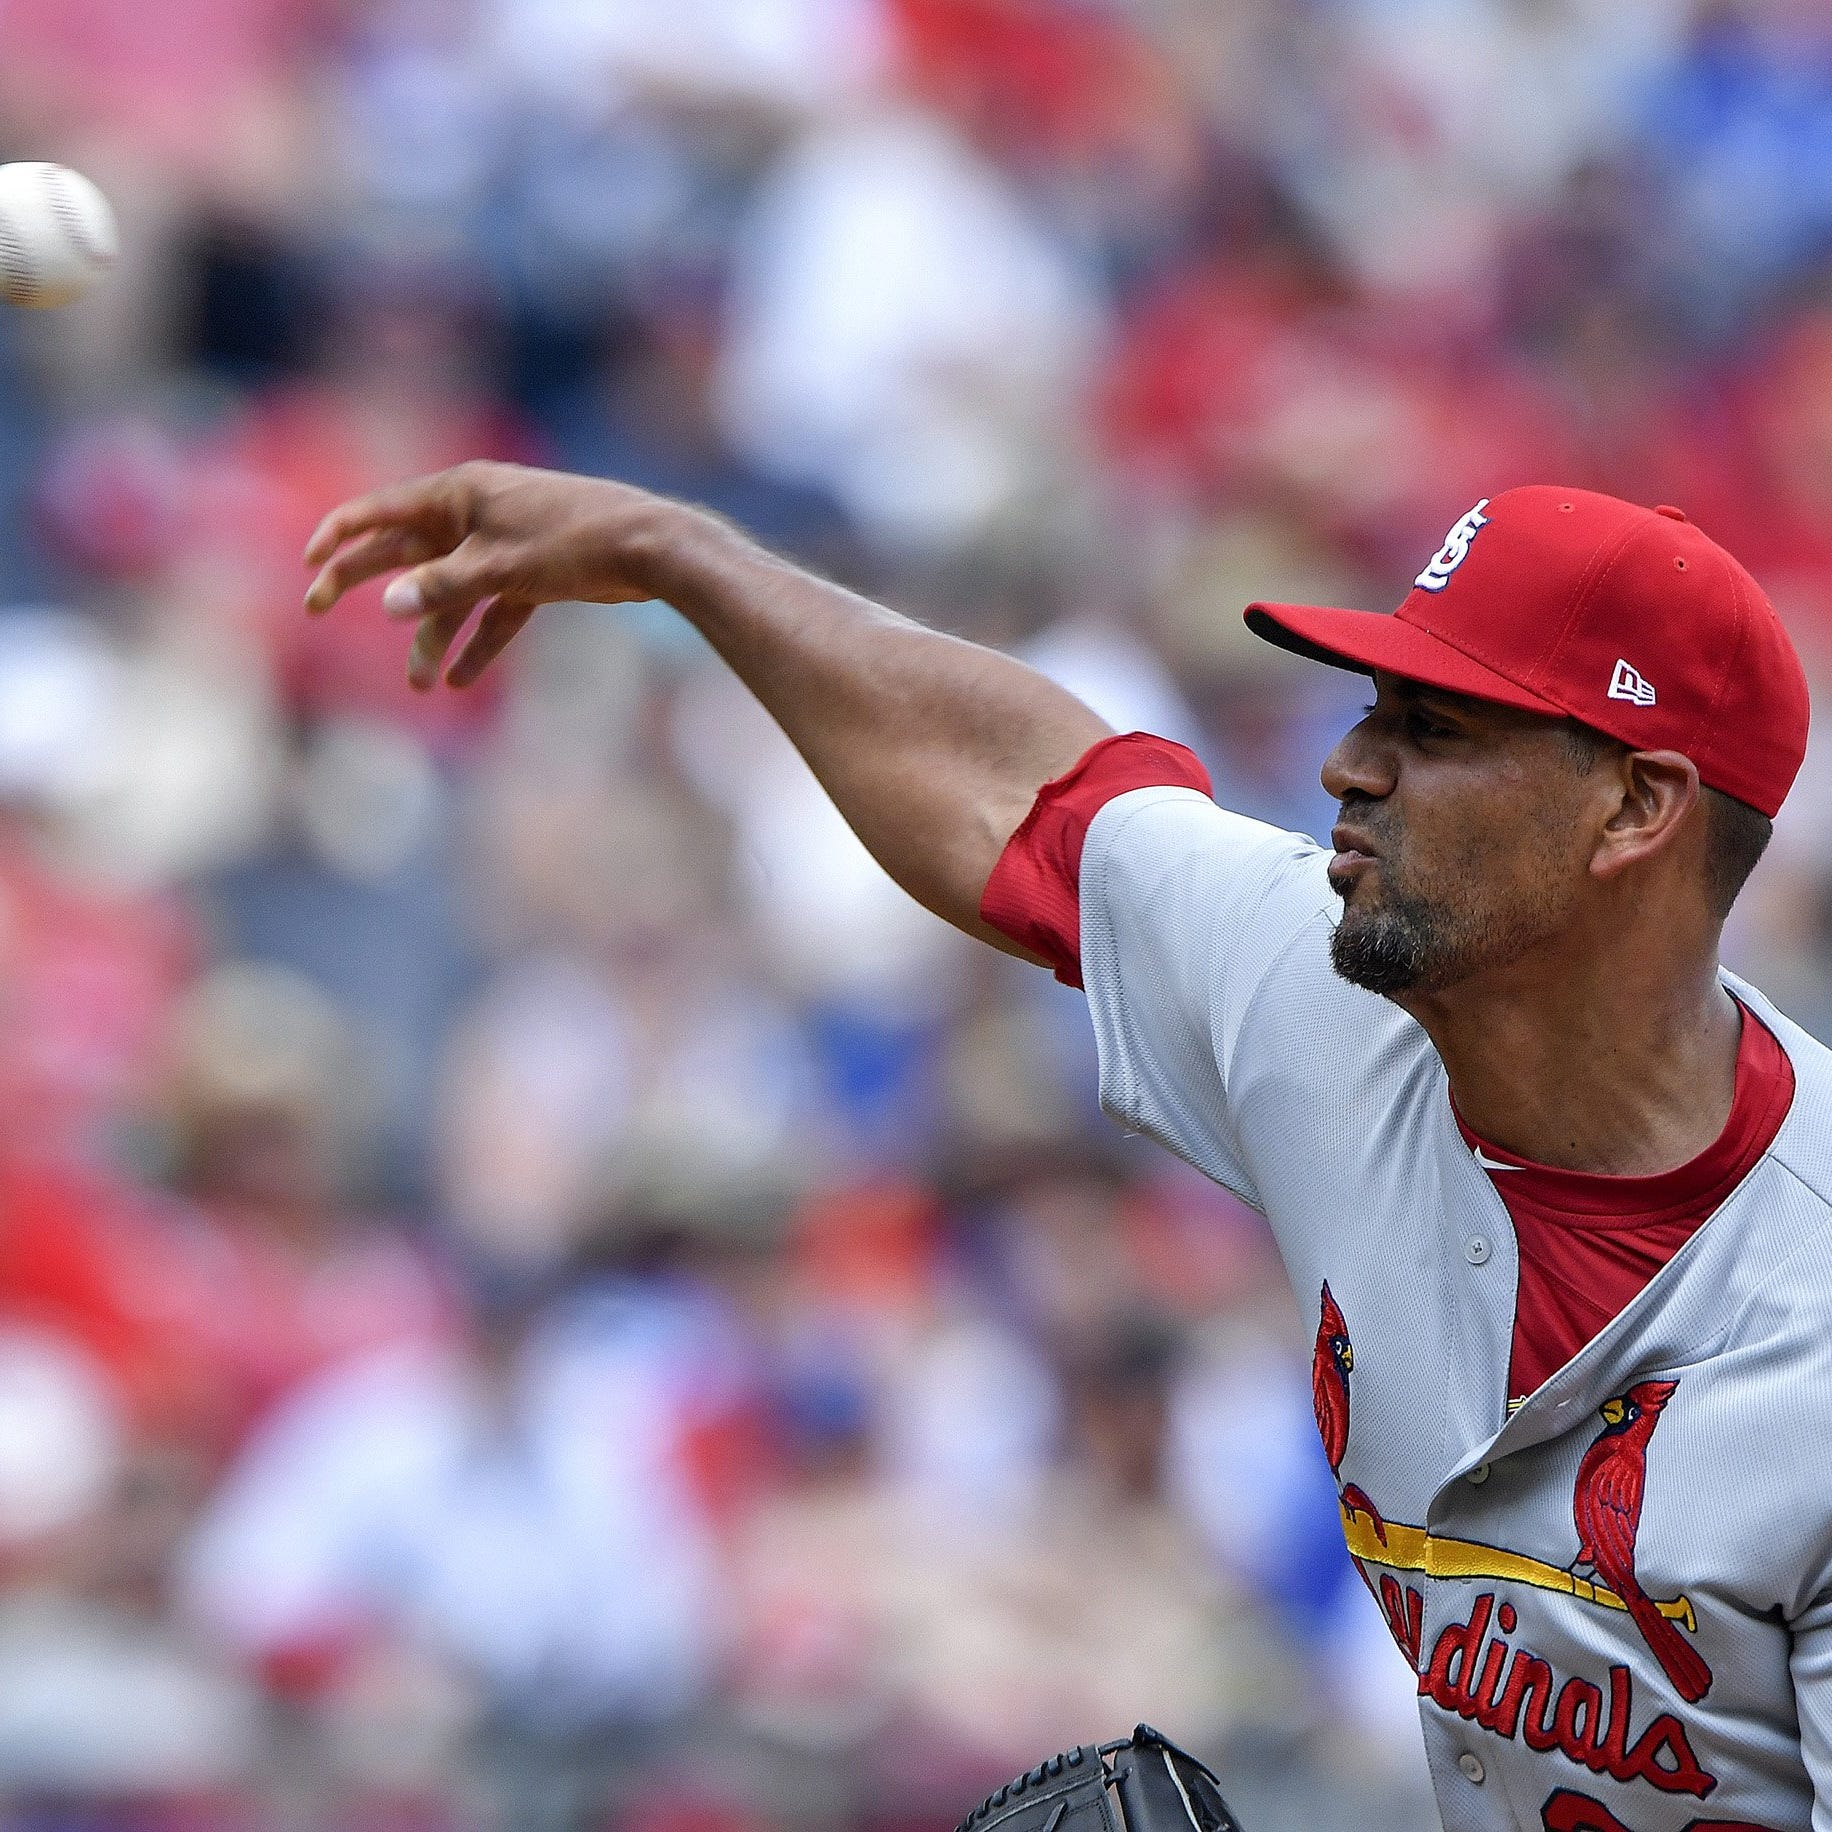 New Detroit Tigers pitcher Tyson Ross: There's a lot left in the tank